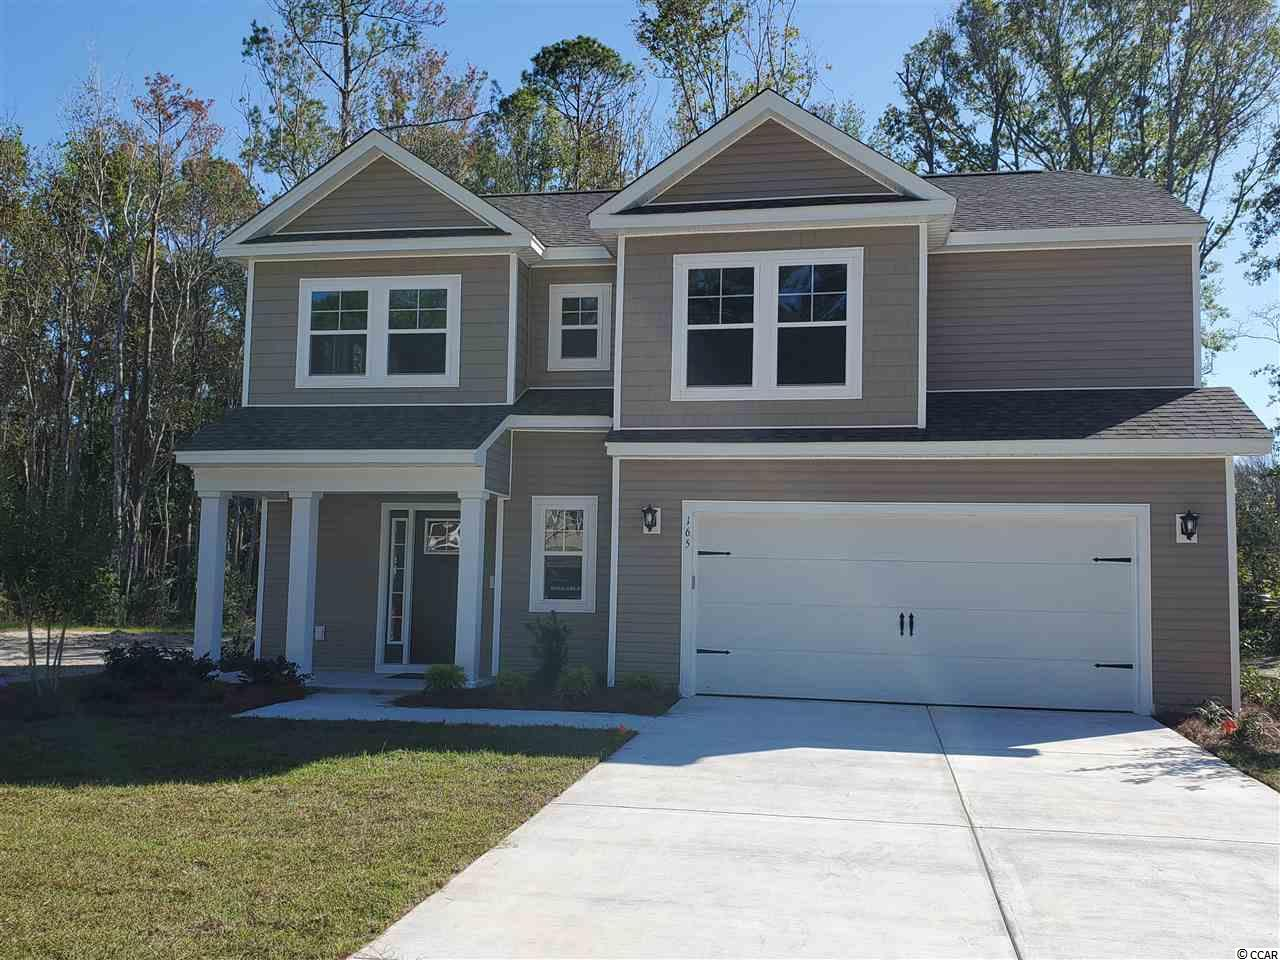 Welcome to 163 Clearwater Dr in Pawleys Cove, one of Pawleys Island's hottest new communities. This 3 bedroom, 2.5 bath home is currently under construction. Home features an open living concept with amazing natural light and a split bedroom plan. Kitchen features an island with double sink, granite countertops, stainless appliances a corner walk-in pantry and a large breakfast nook. The living area is open to the kitchen with plenty of natural light. The master suite is 13x13 giving you plenty of room to relax. The master bath features double sinks, shower, private water closet, a linen closet and a walk-in closet. The two additional upstairs bedrooms are spacious with great closet space and share a hall bathroom. You have a great laundry room and 2-car garage with an additional knock out area and side exit door. Home does have a front covered porch and a great back screened porch. Pawleys Cove is nestled in the tranquil Pawleys Island community. Pawleys Island is a famous seaside town known for its laid-back lifestyle and timeless culture. Often referred to as arrogantly shabby, we are sure that you will enjoy many happy memories in your new Pawleys Cove home. All information is deemed reliable but not guaranteed. Buyer is responsible for verification.